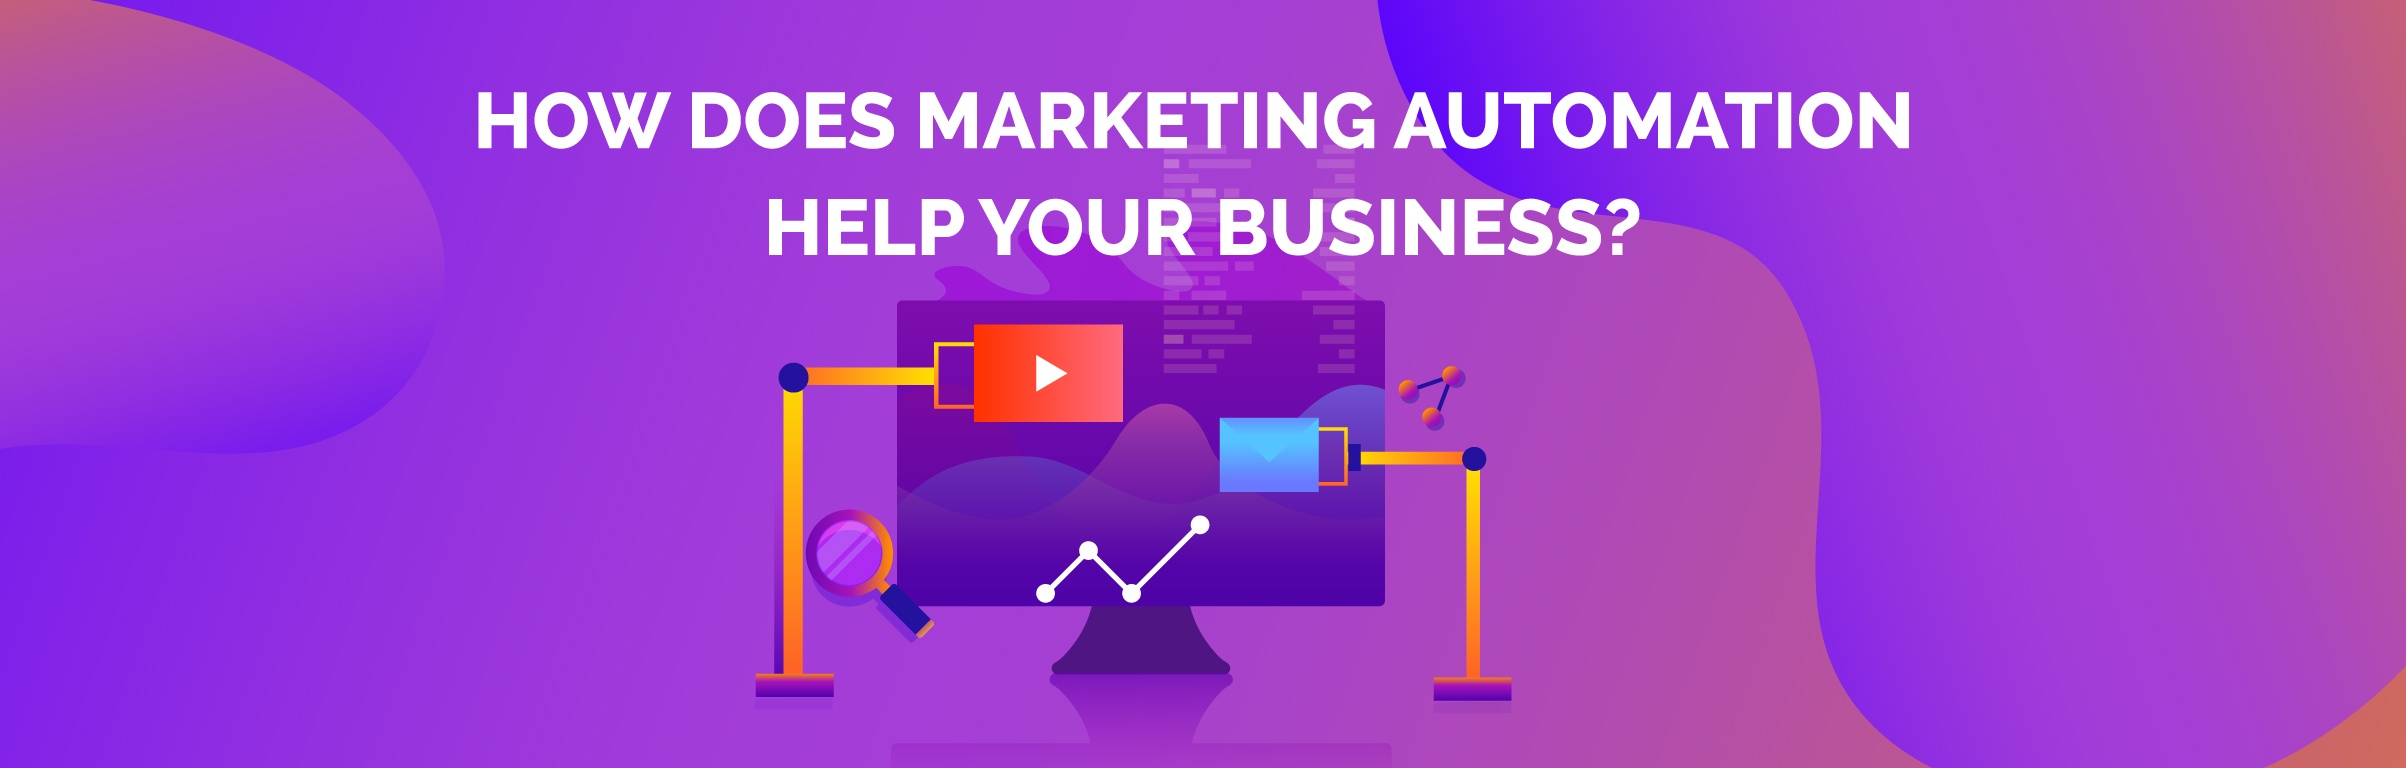 How does marketing automation help your business?